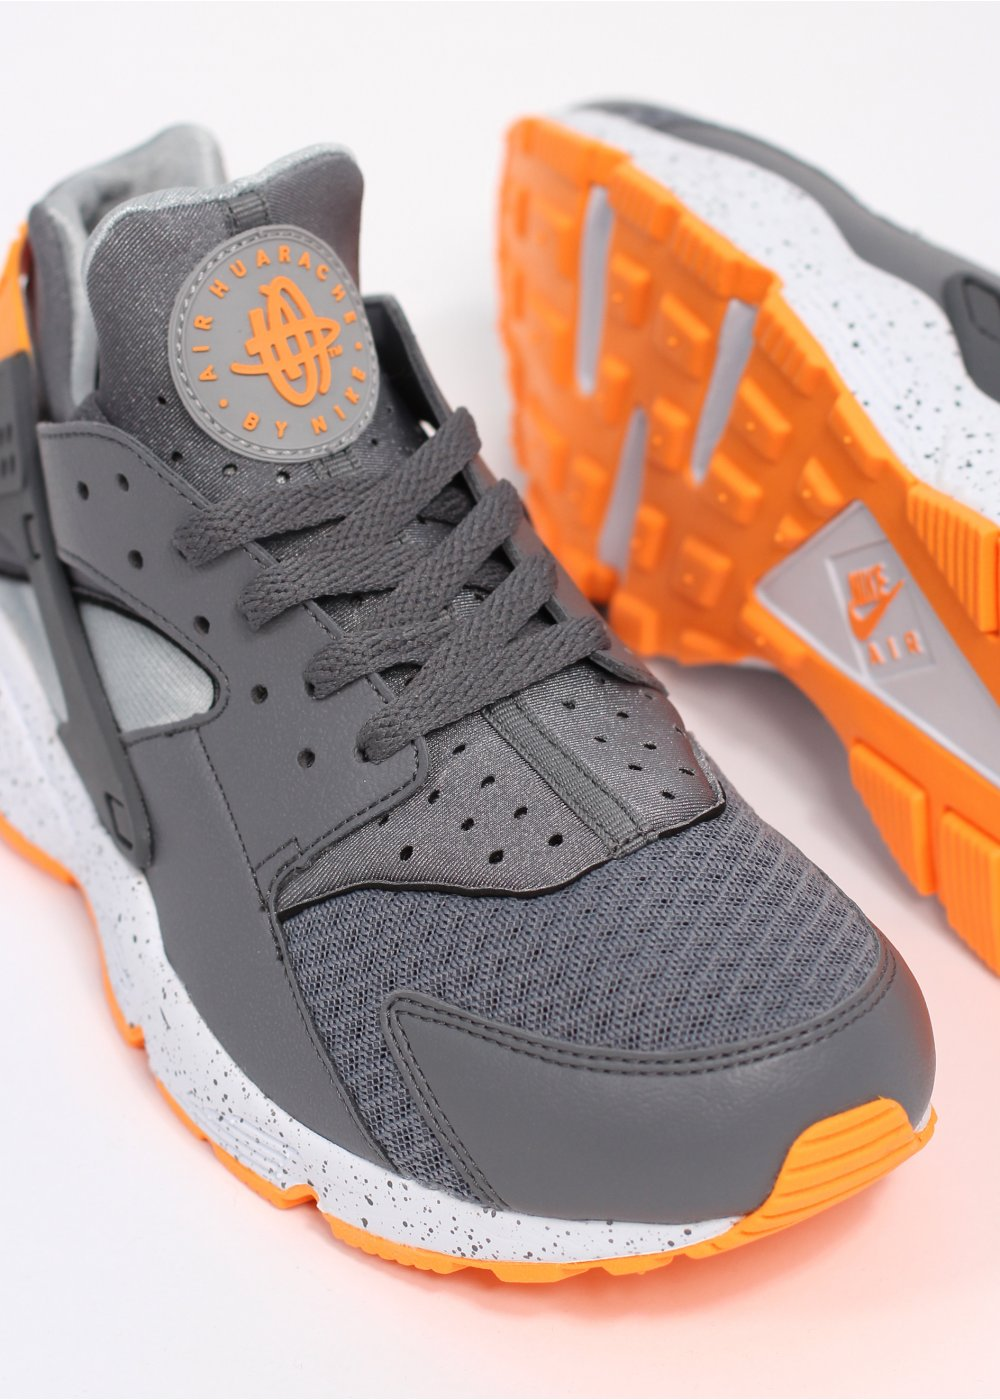 a6bb691a18ca Nike Air Huarache Run Trainers - Cool Grey   Atomic Orange